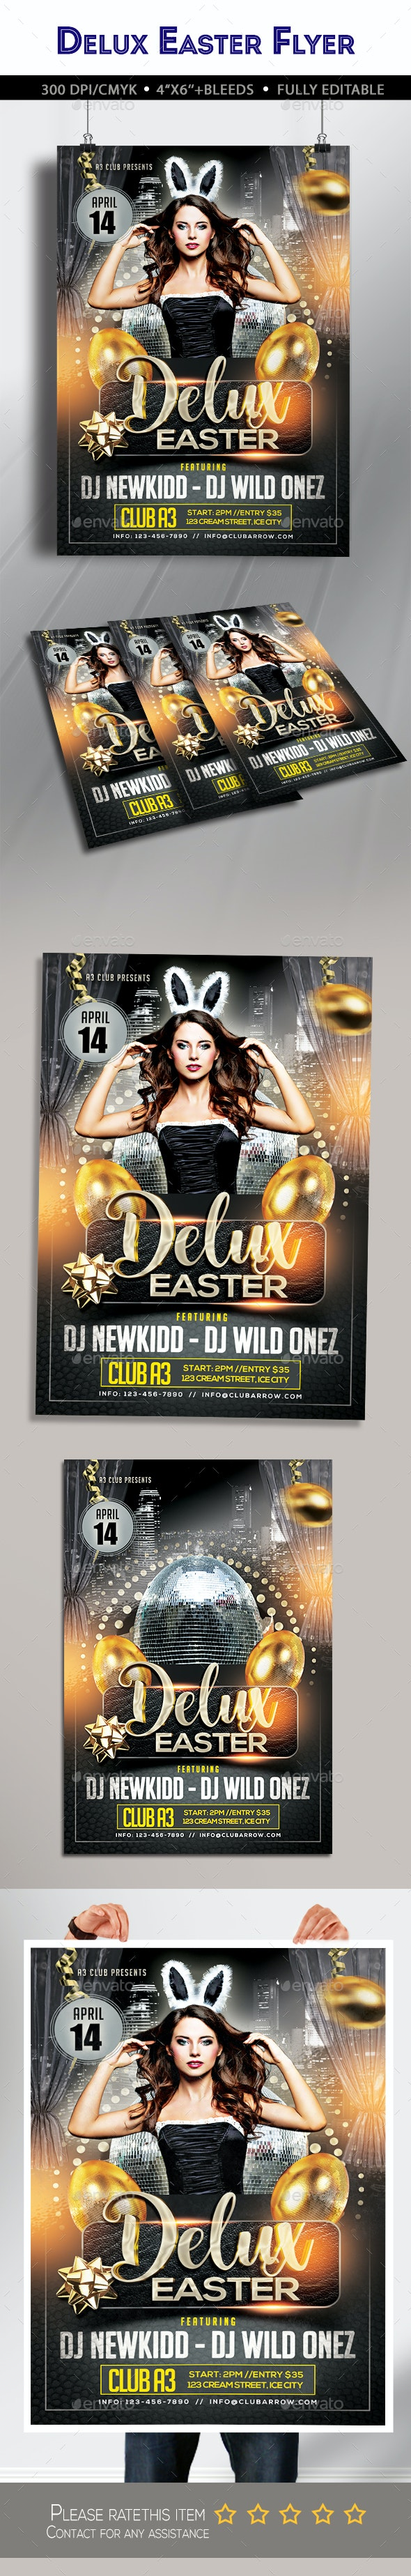 Delux Easter Flyer - Clubs & Parties Events